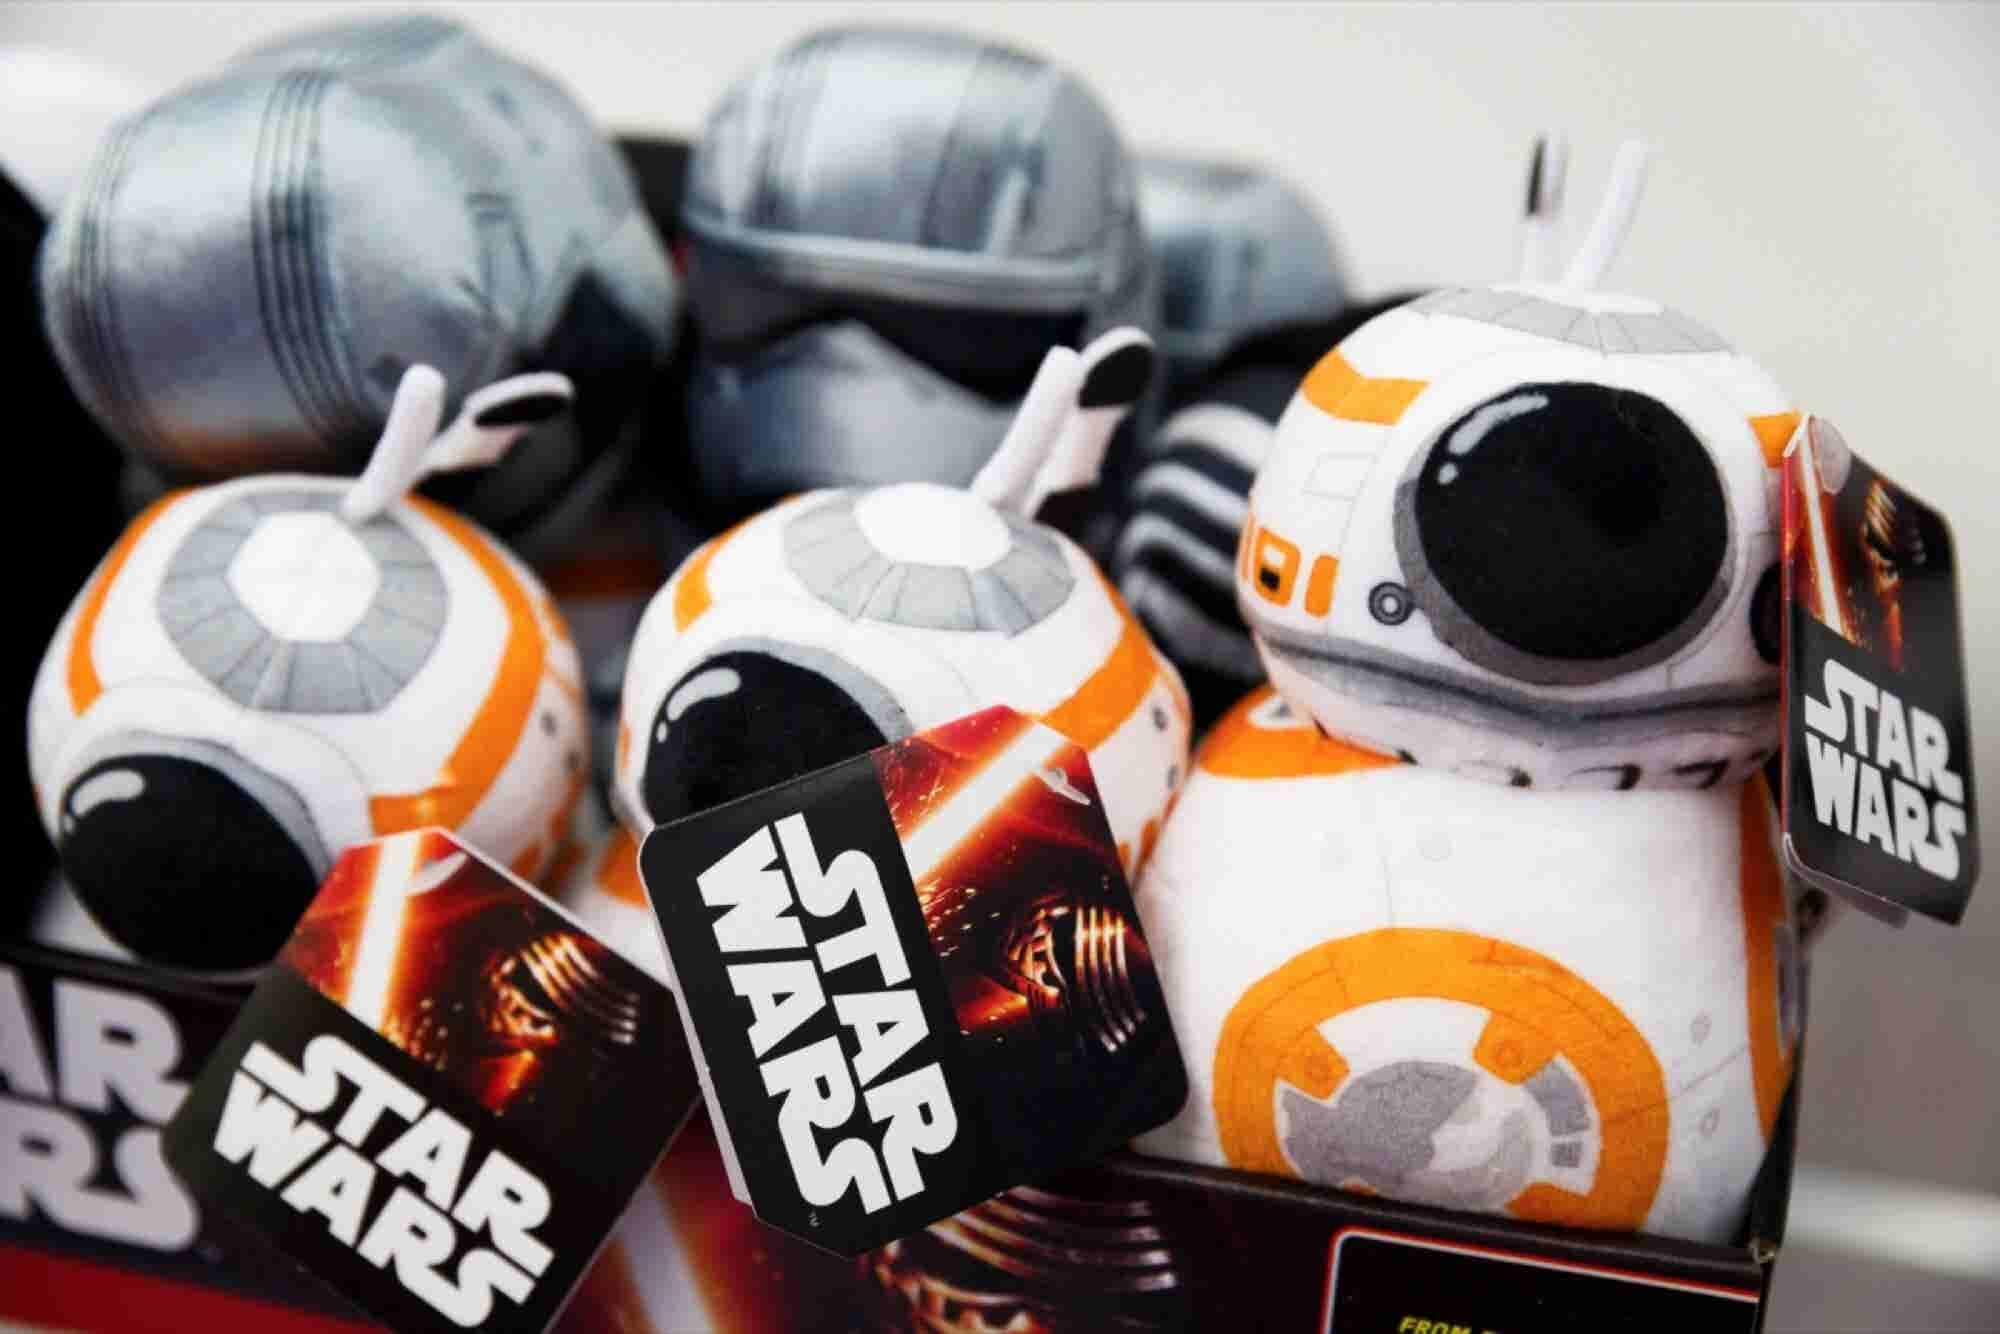 Let's Talk About 'Star Wars' -- That Franchising Juggernaut